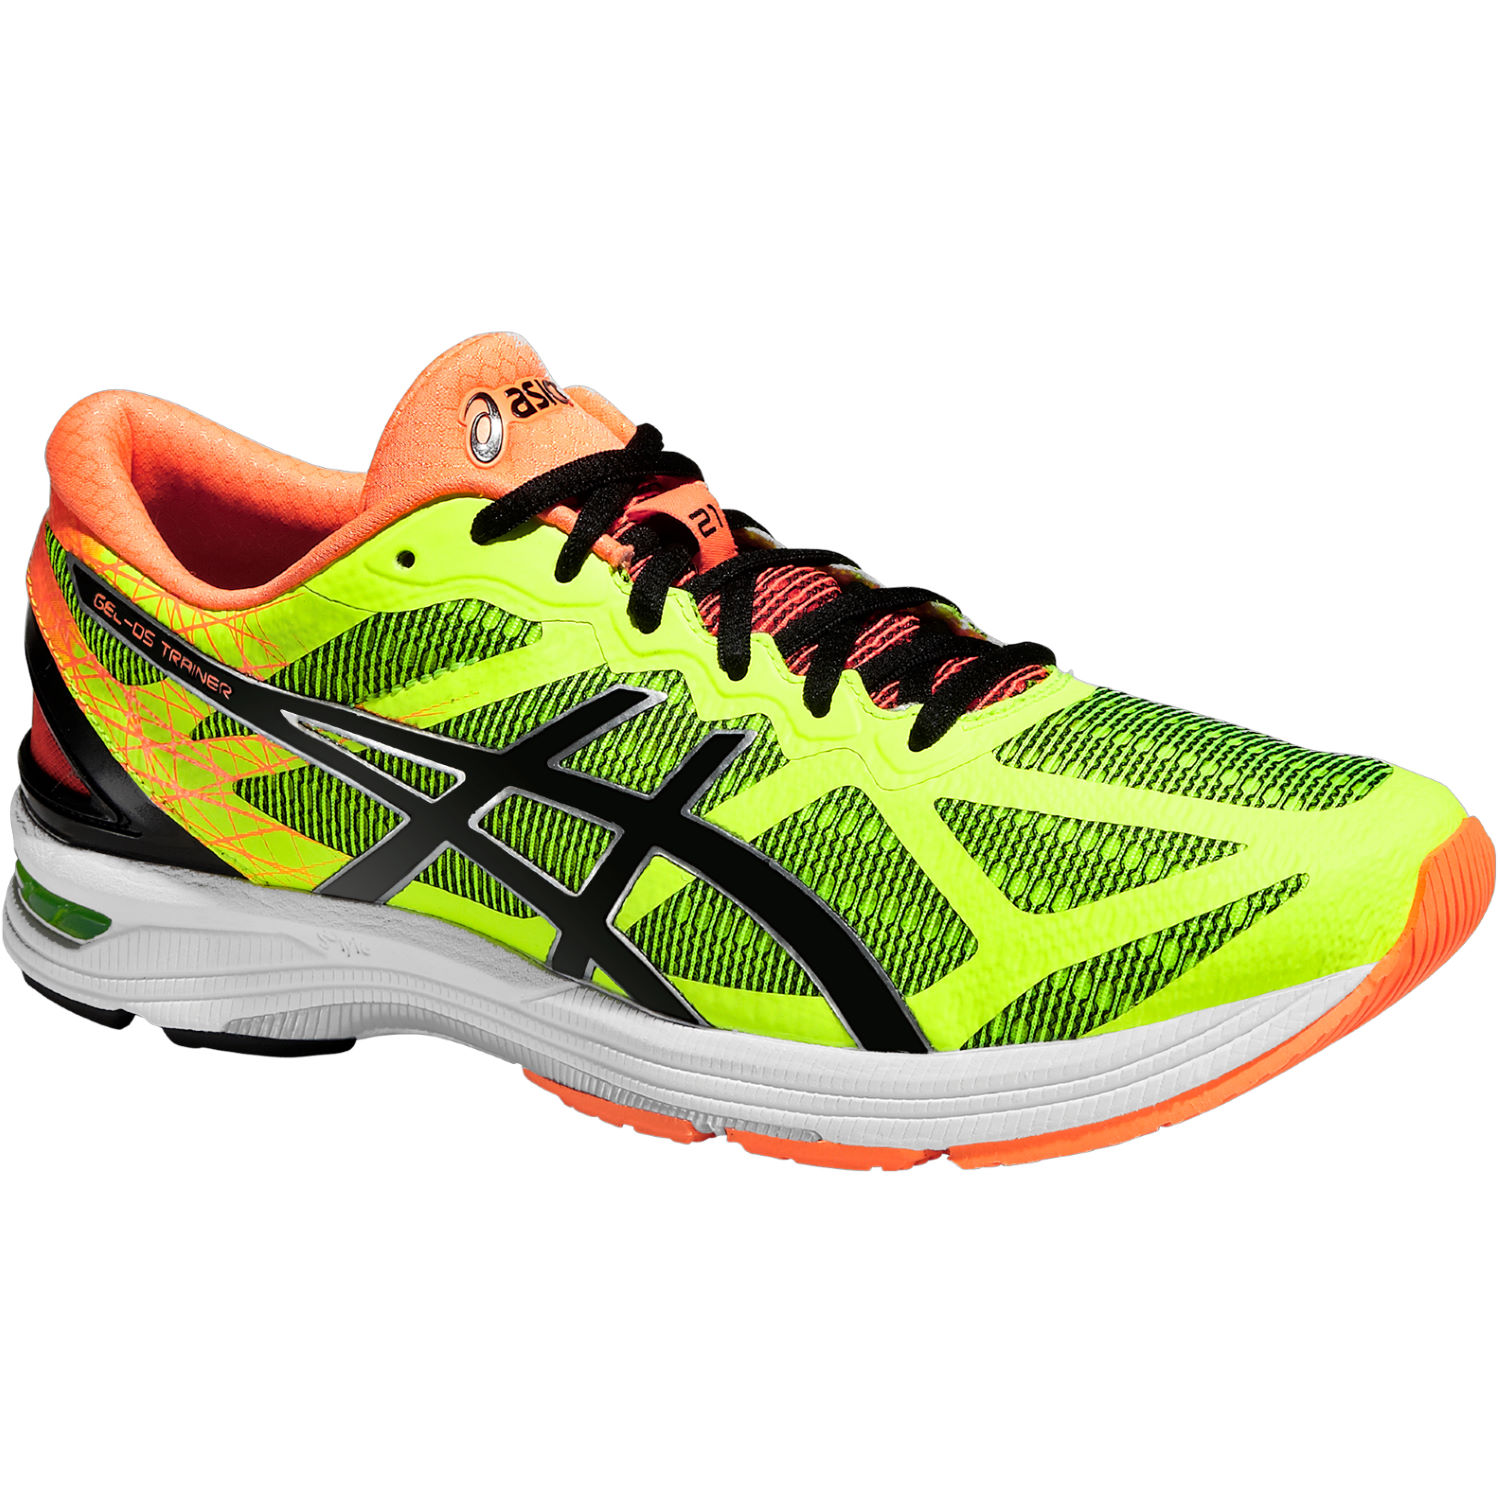 Racing Running Shoes For Sale